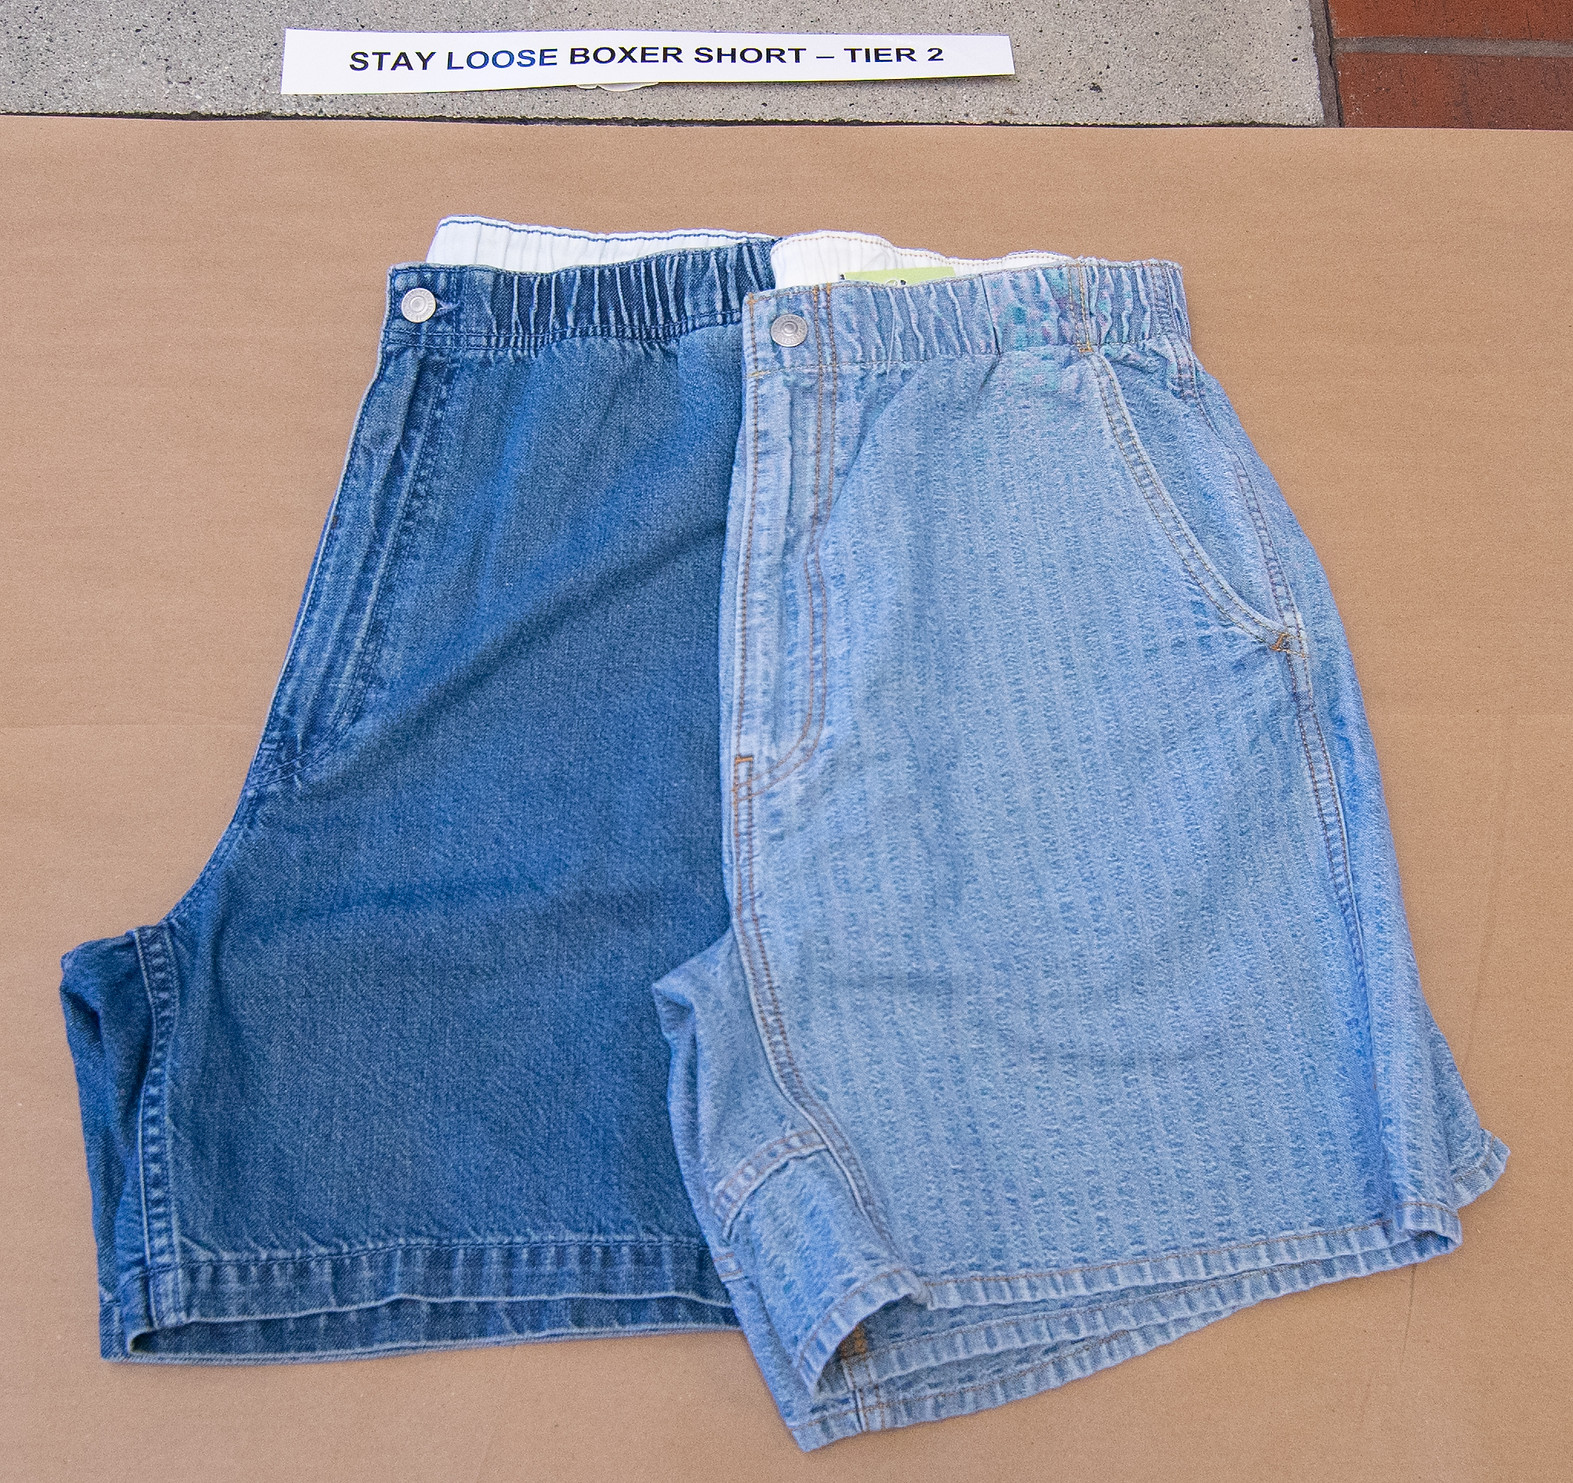 MB_STAY LOOSE BOXER SHORT - TIER 2.jpg